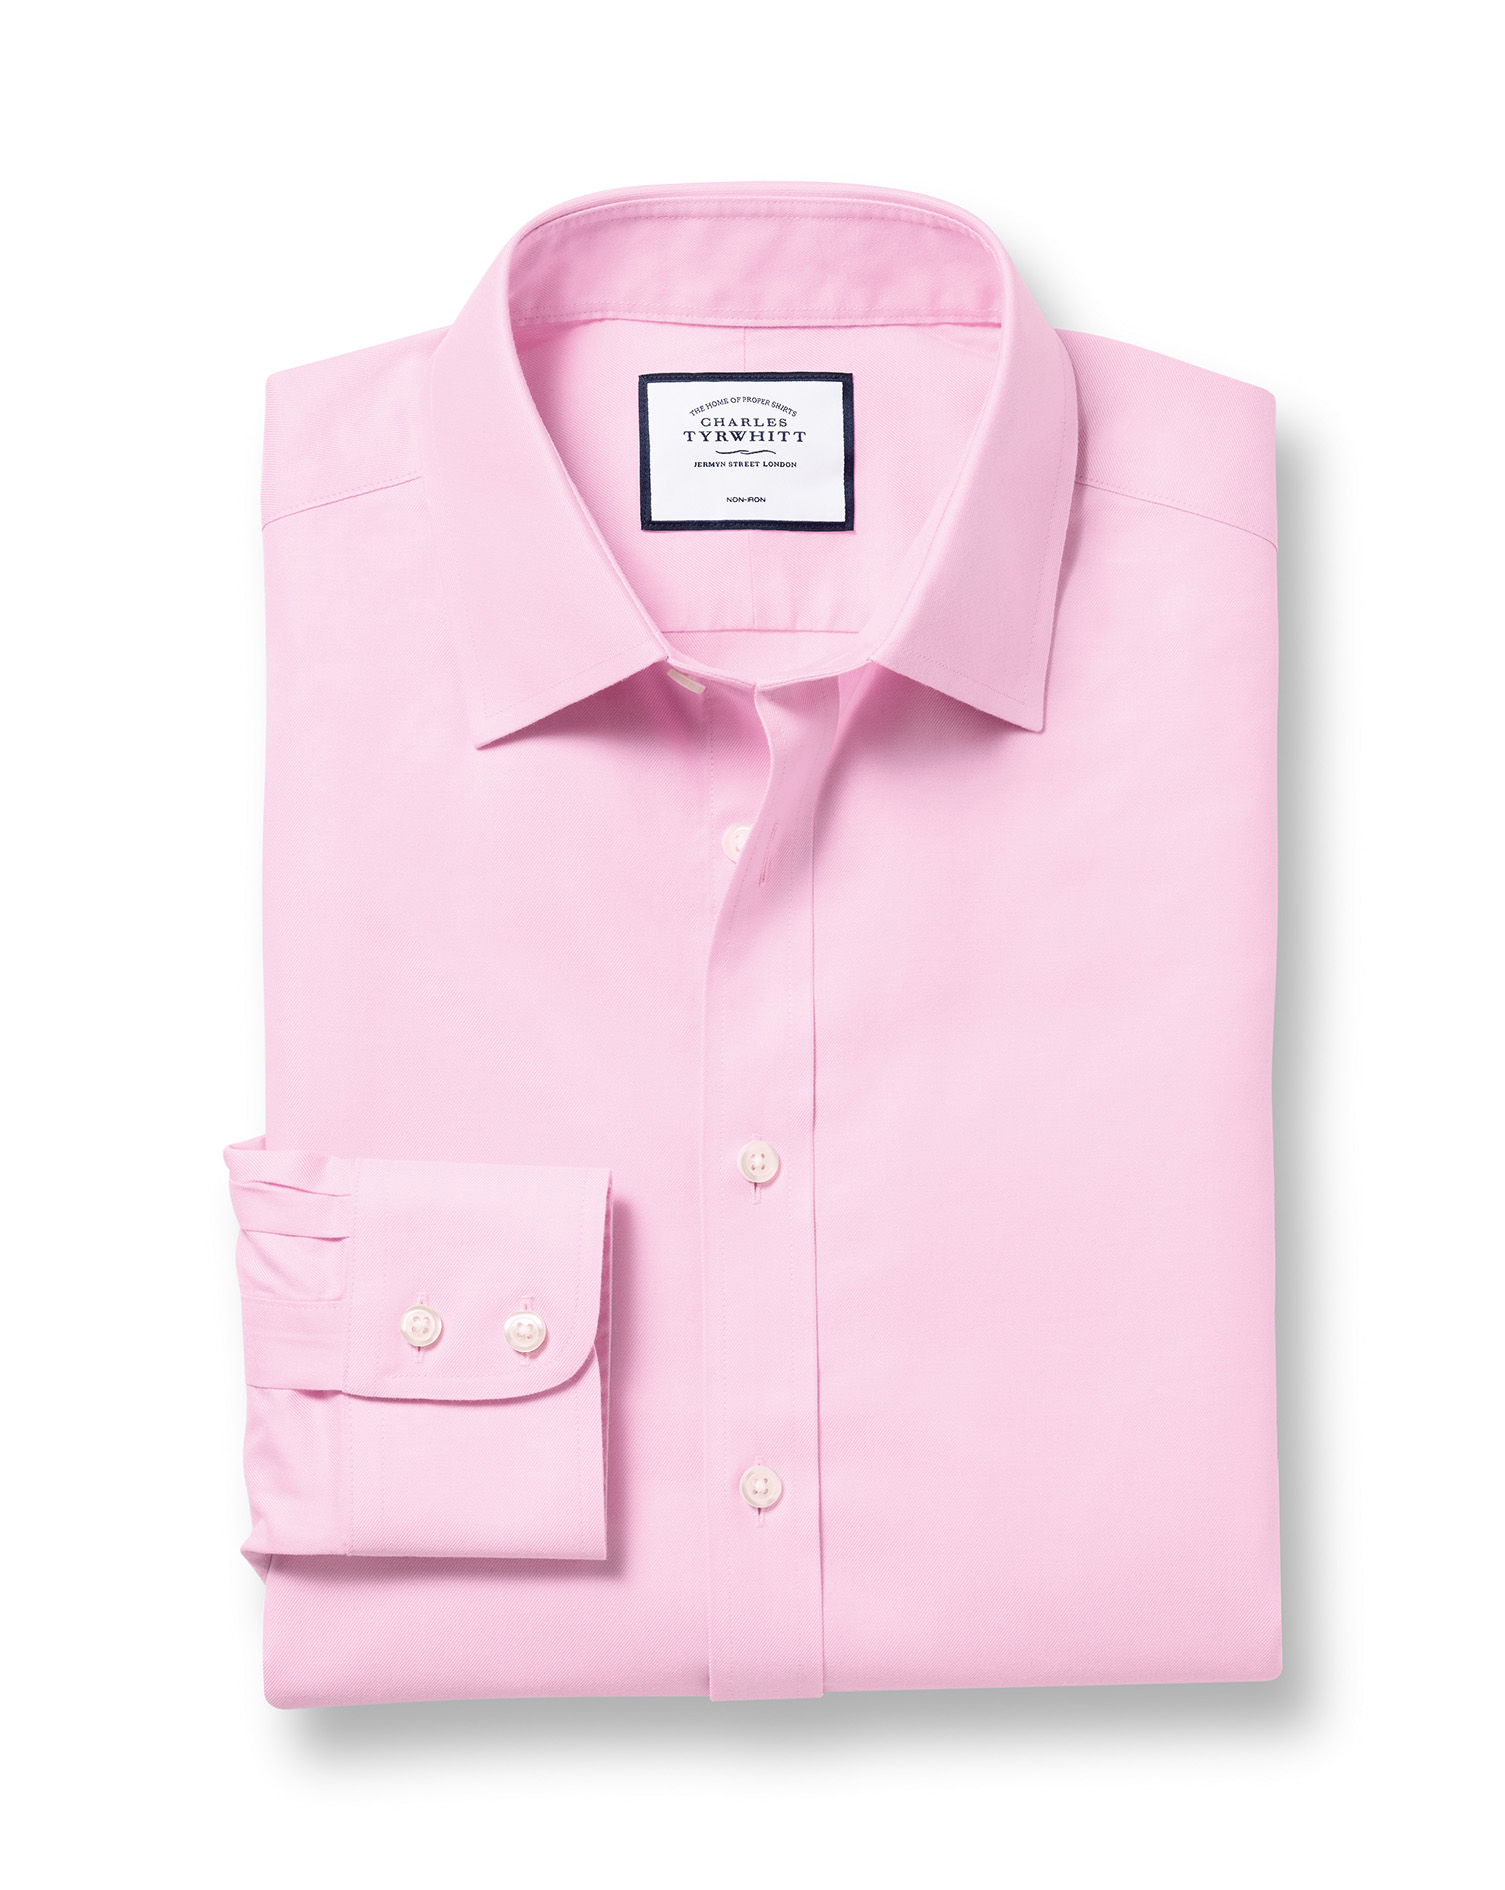 Classic Fit Non-Iron Twill Pink Cotton Formal Shirt Double Cuff Size 16.5/36 by Charles Tyrwhitt